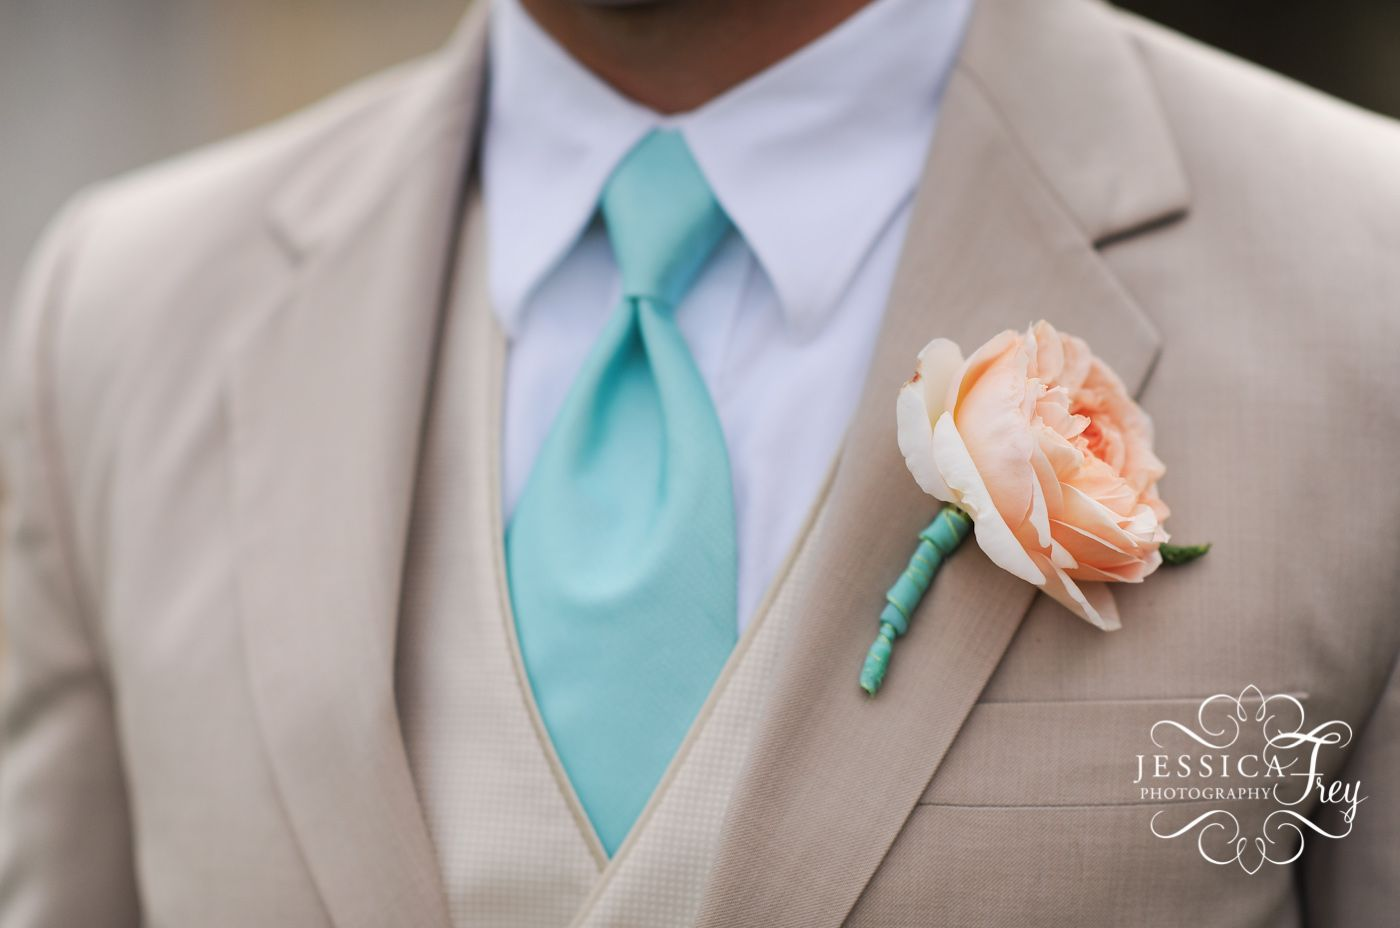 I like this suit color with the blue tie and blush flower pink ...